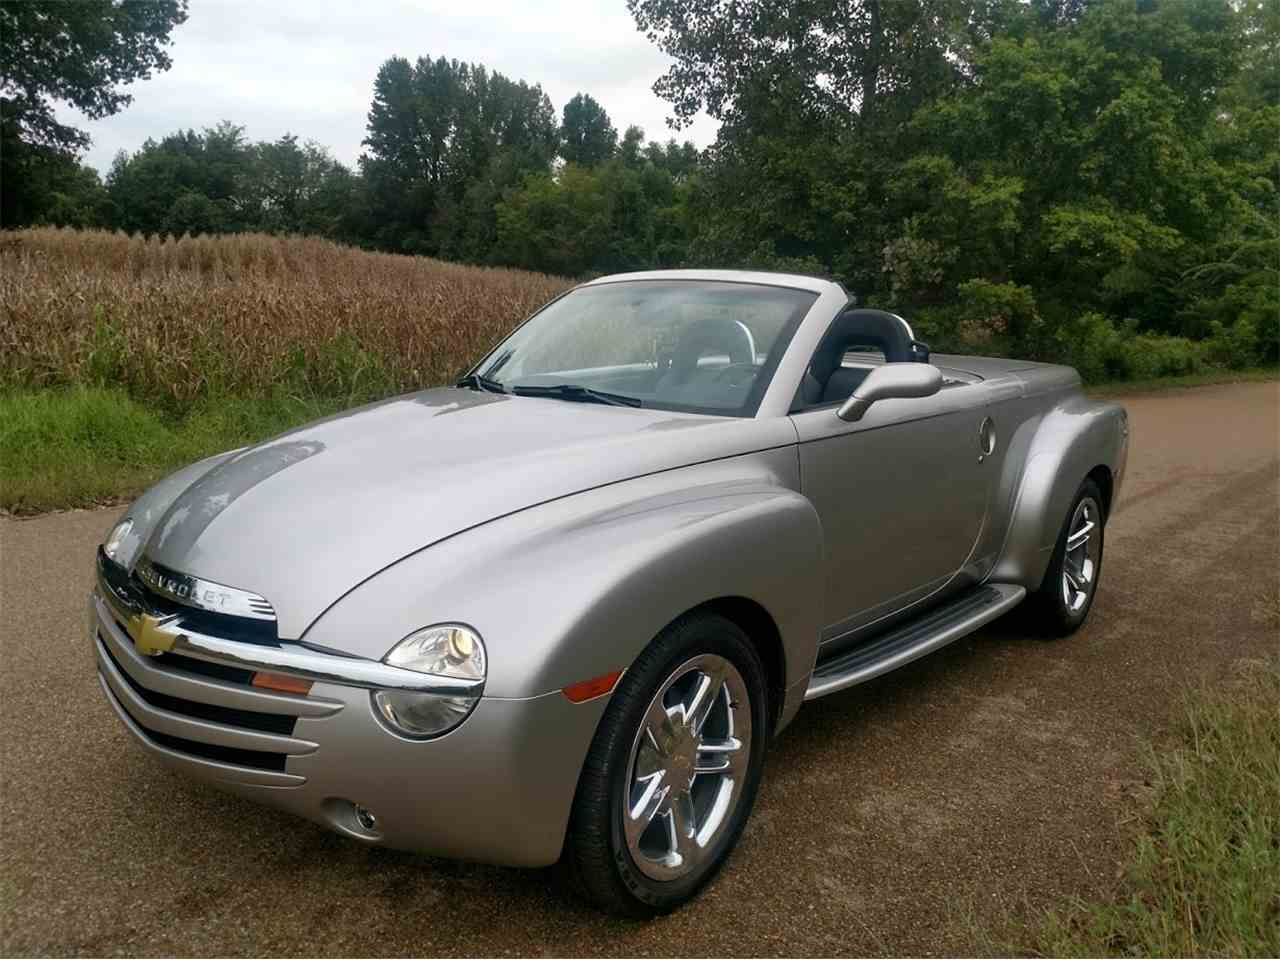 All Chevy 2006 chevrolet ssr for sale : 2006 Chevrolet SSR for Sale | ClassicCars.com | CC-1024862